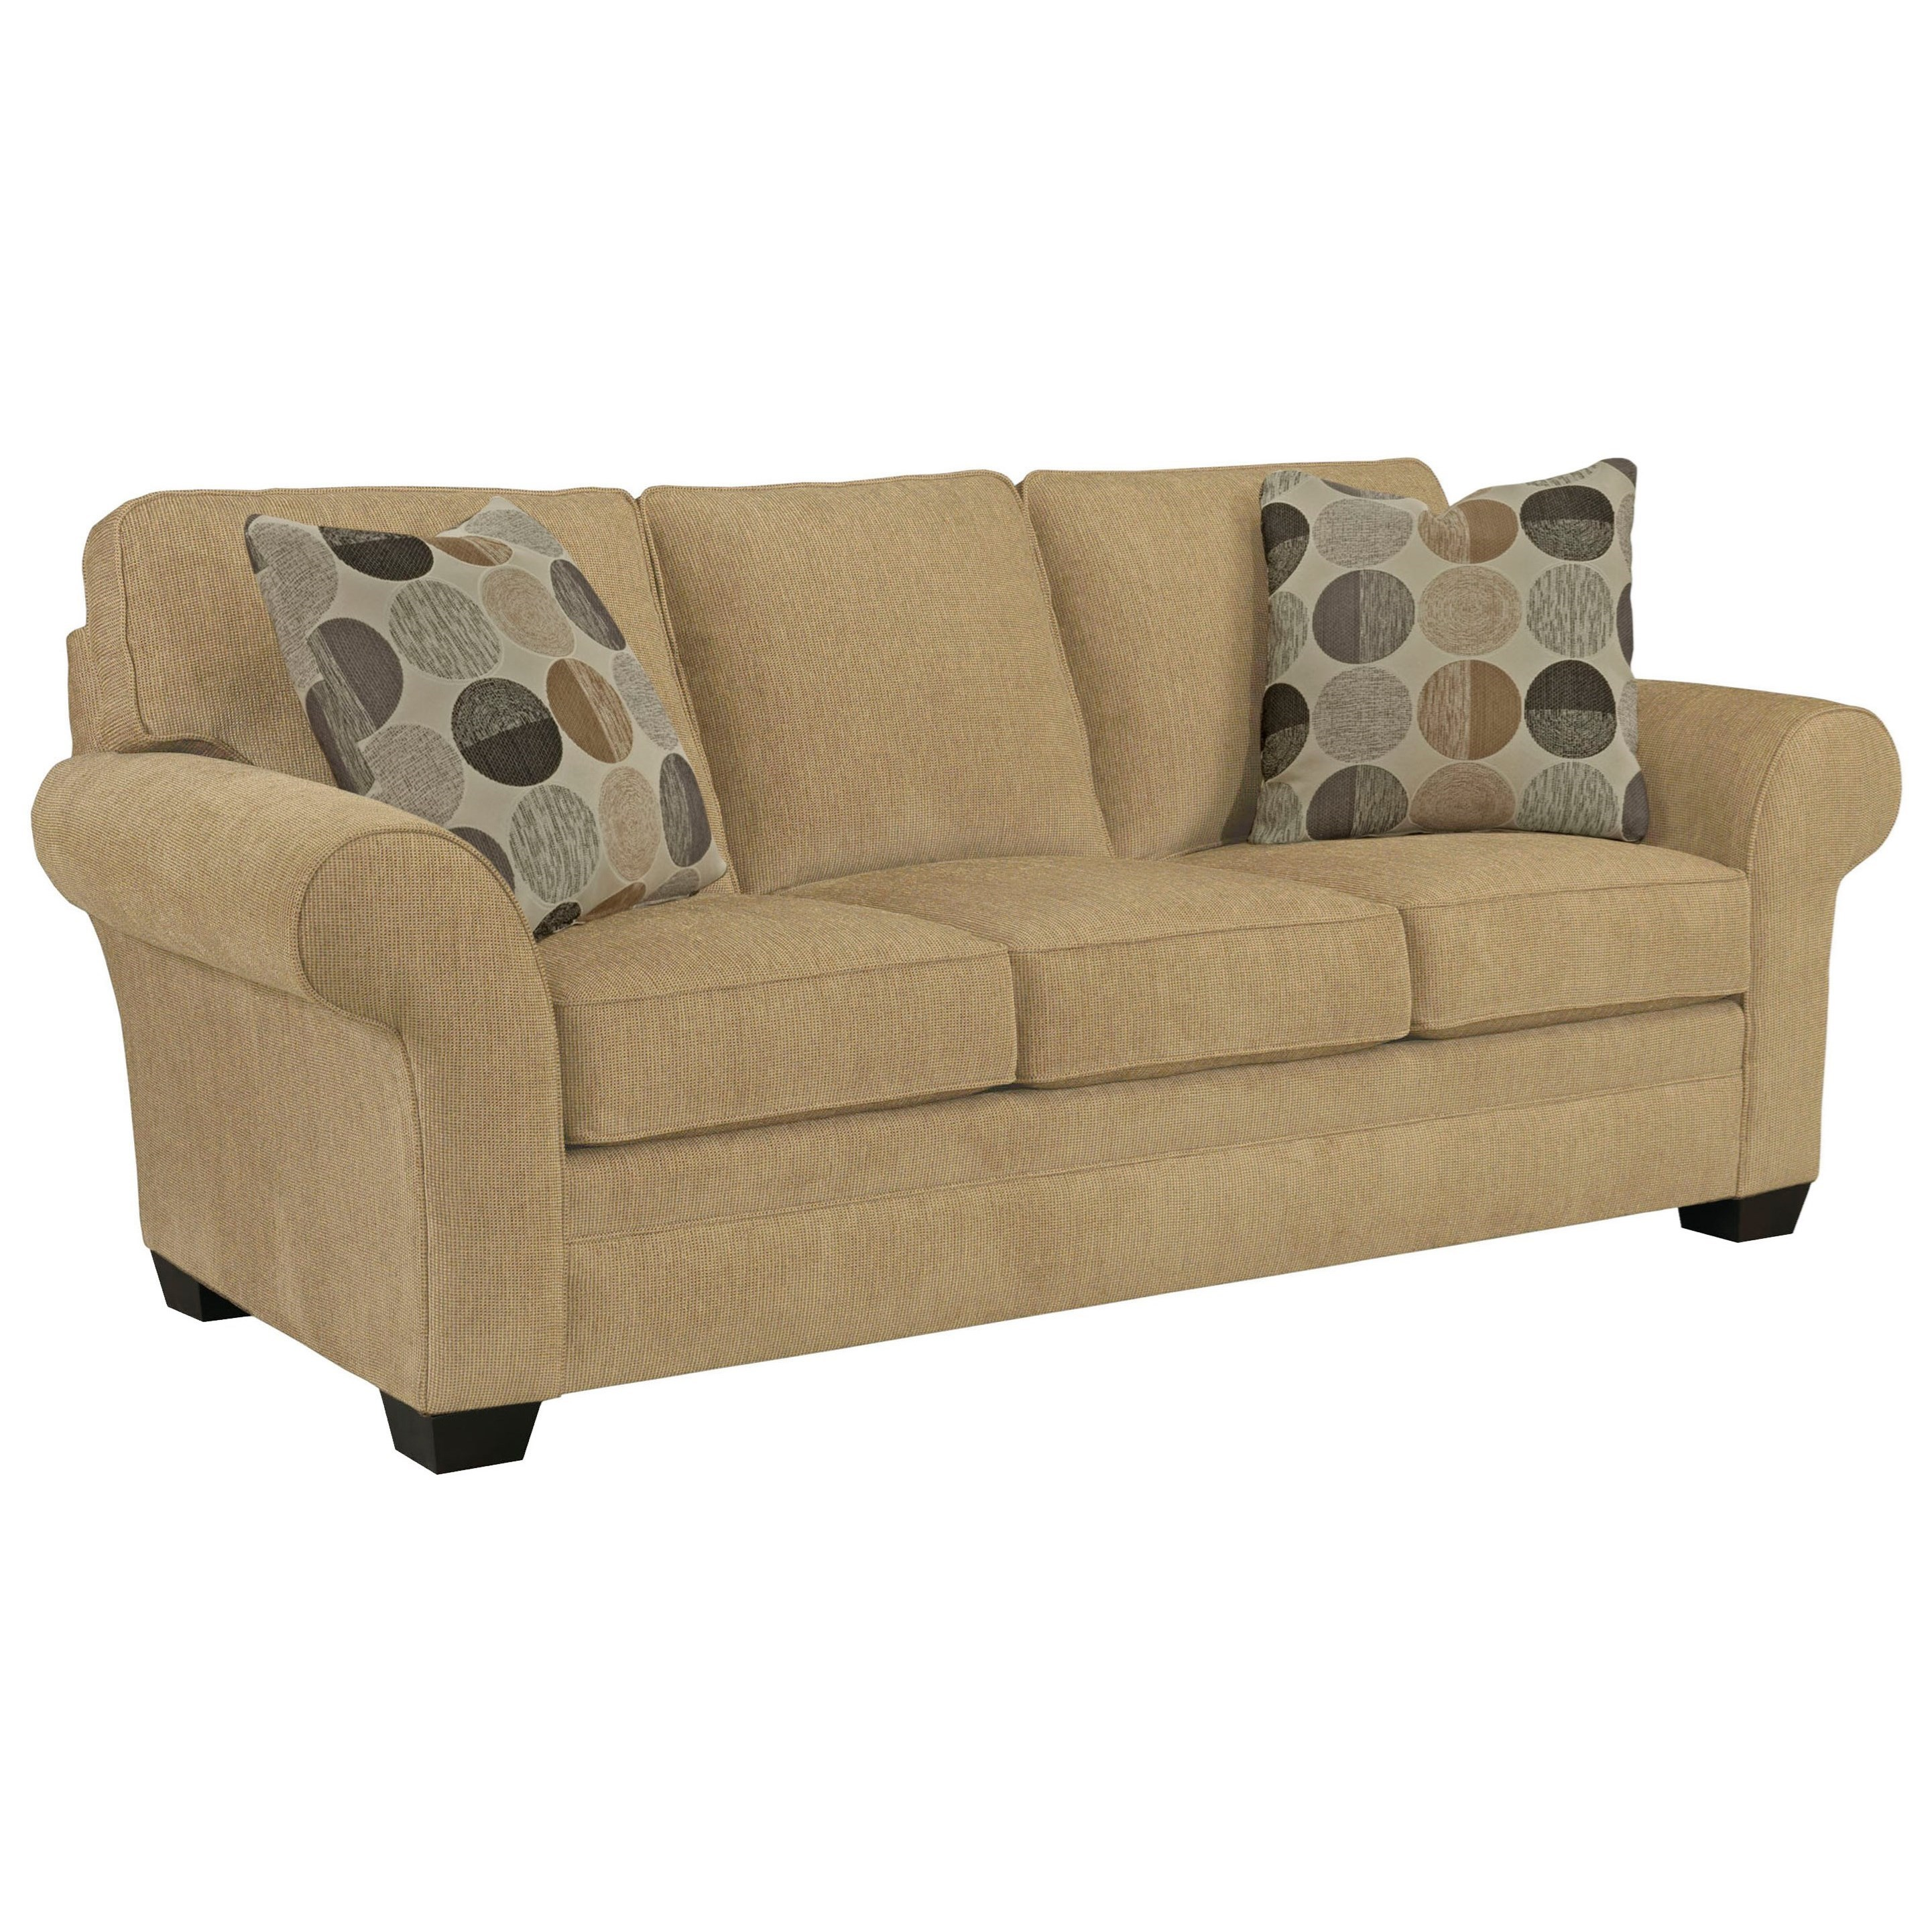 Broyhill Furniture Zachary Upholstered Sofa - Item Number: 7902-3-8595-83